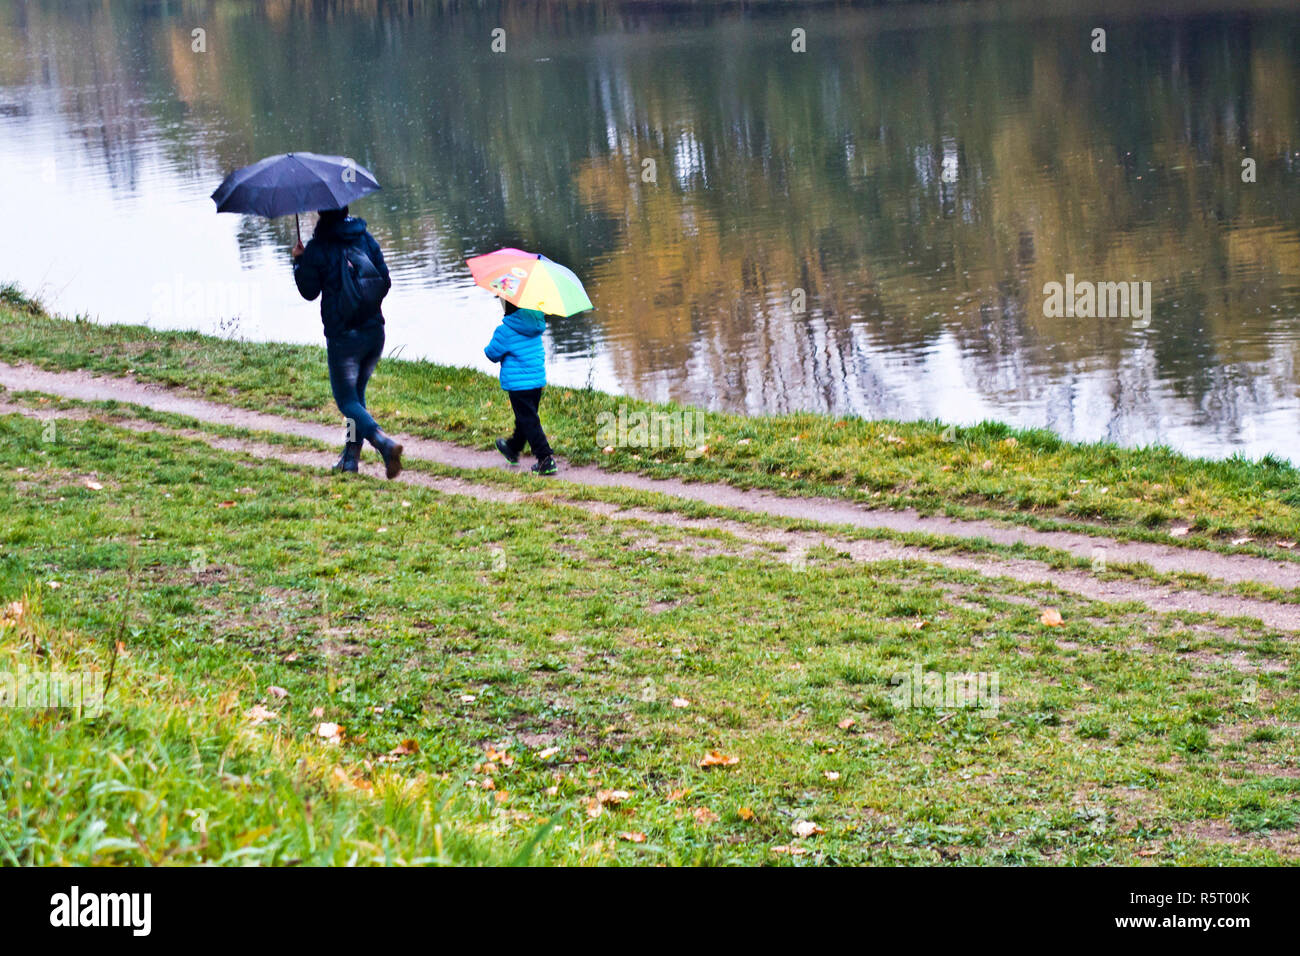 mother with her child walking along a river with umbrellas in a rainy day - Stock Image